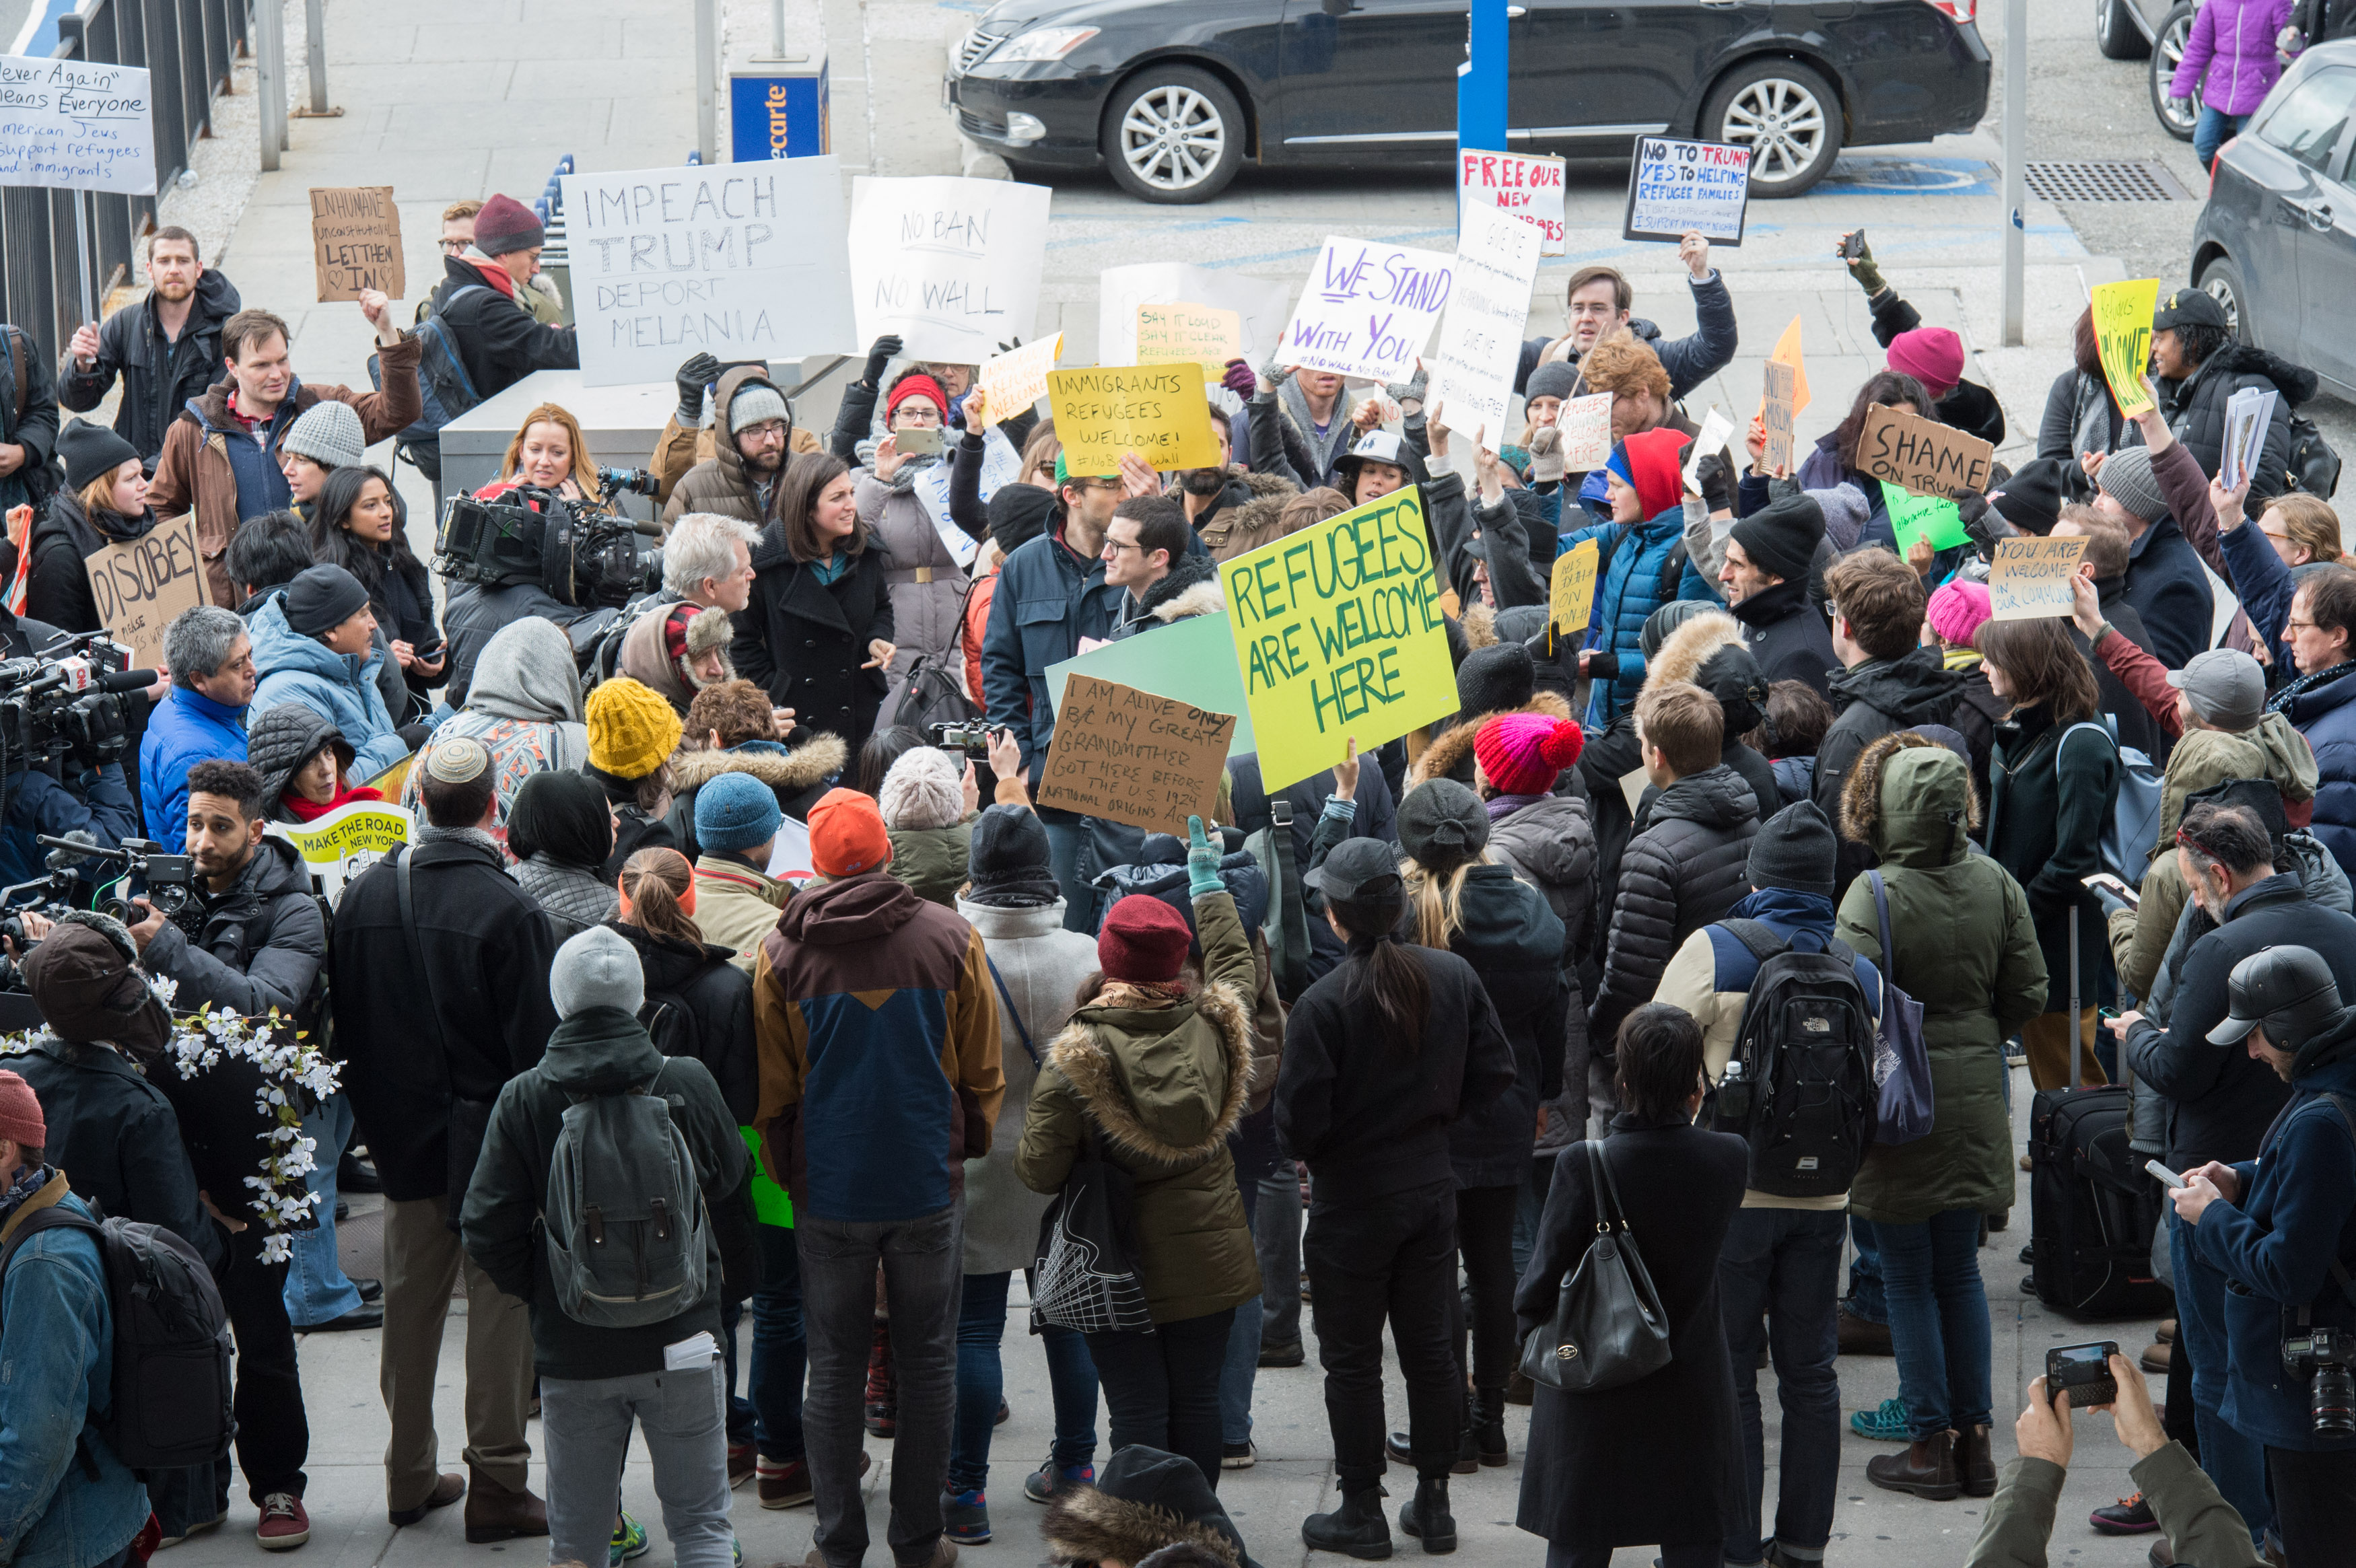 Protesters gather at JFK International Airport's Terminal 4 to demonstrate against Trump's executive order, on Jan. 28, 2016 in New York.